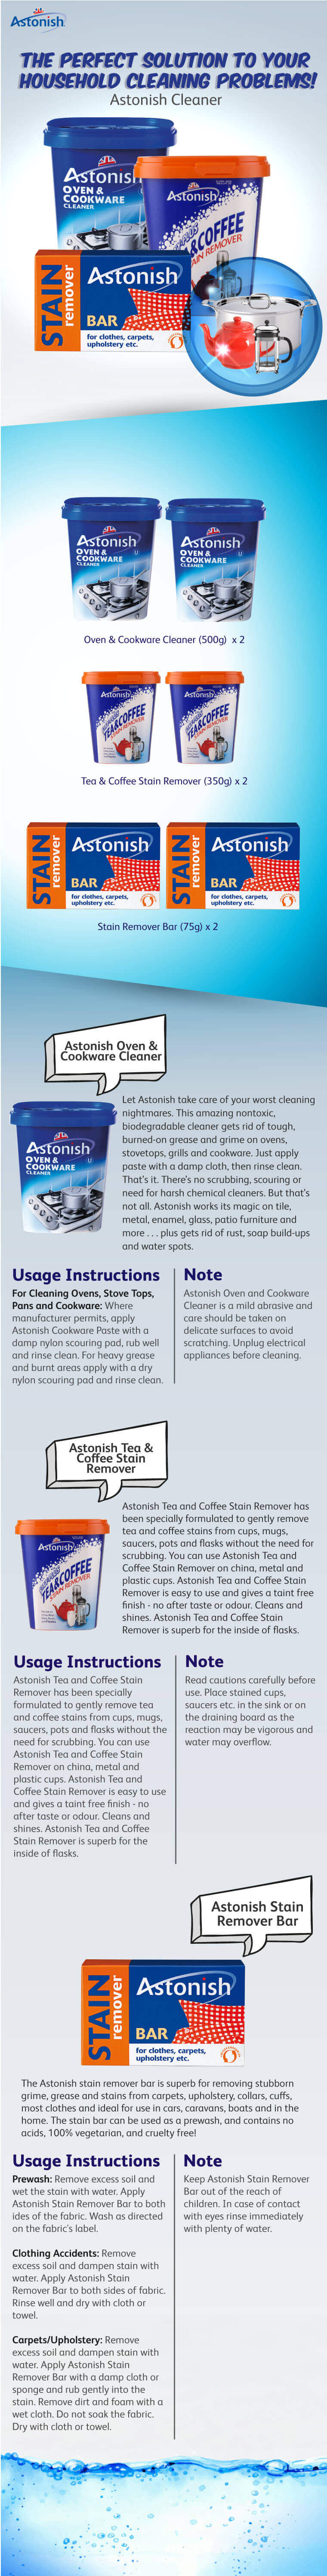 Astonish cleaner go shop - Coffee stains oil stains get rid easily ...